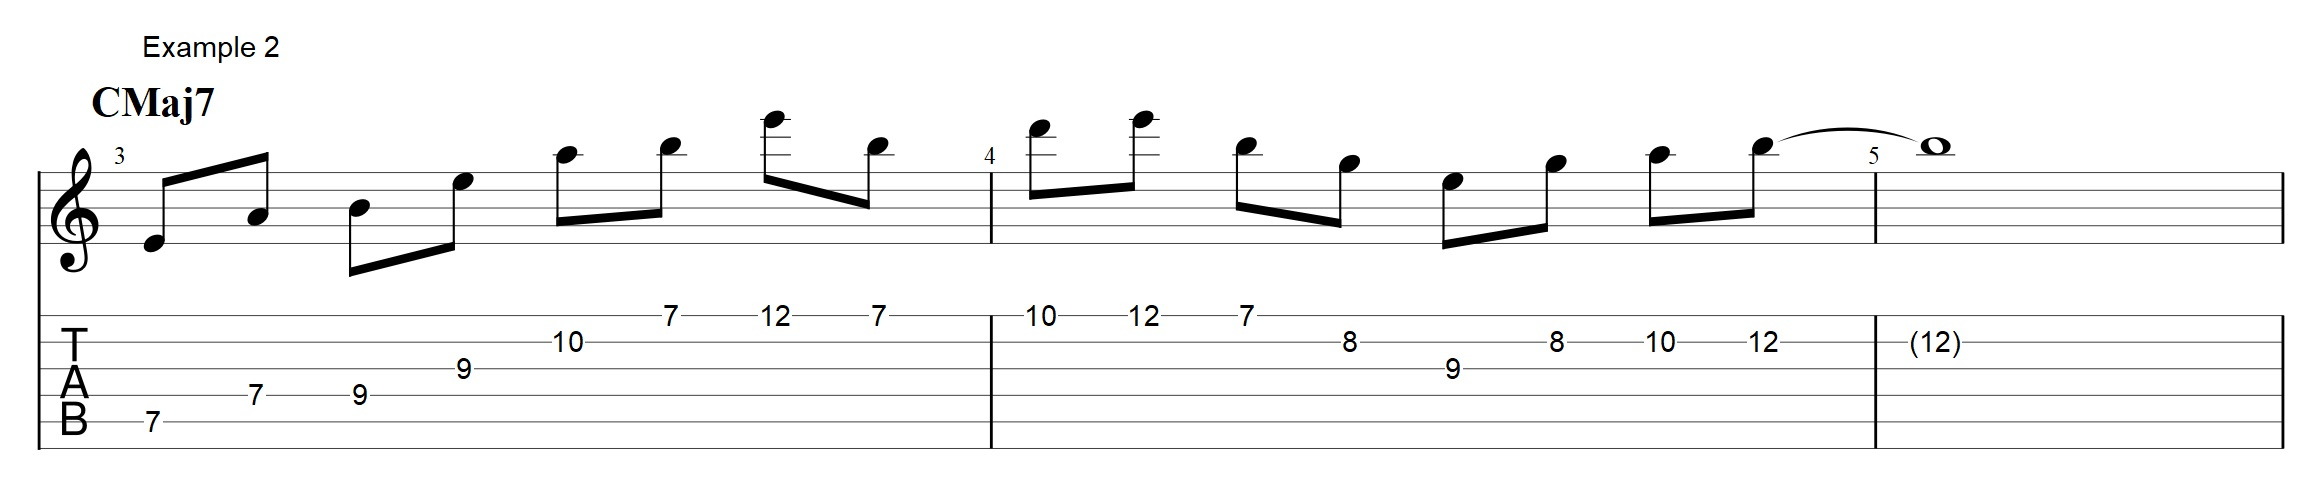 5 Sus4 Triads And The Perfect Maj7 Licks You Can Make With Them